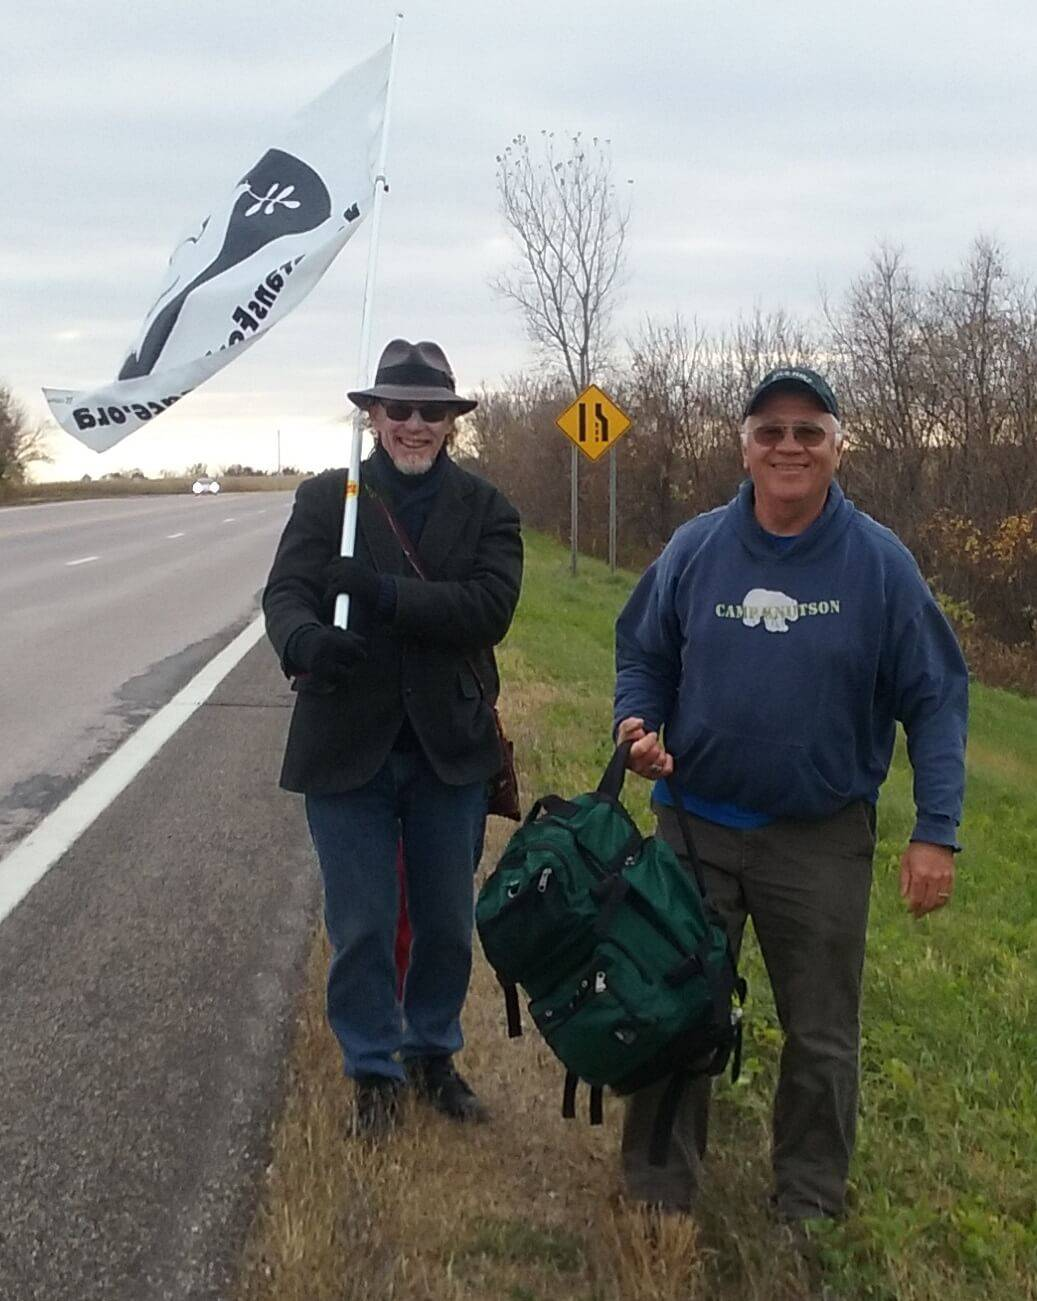 Two older gentleman, modern day, walking along the side of the road. One carries a Veterans for Peace flag.